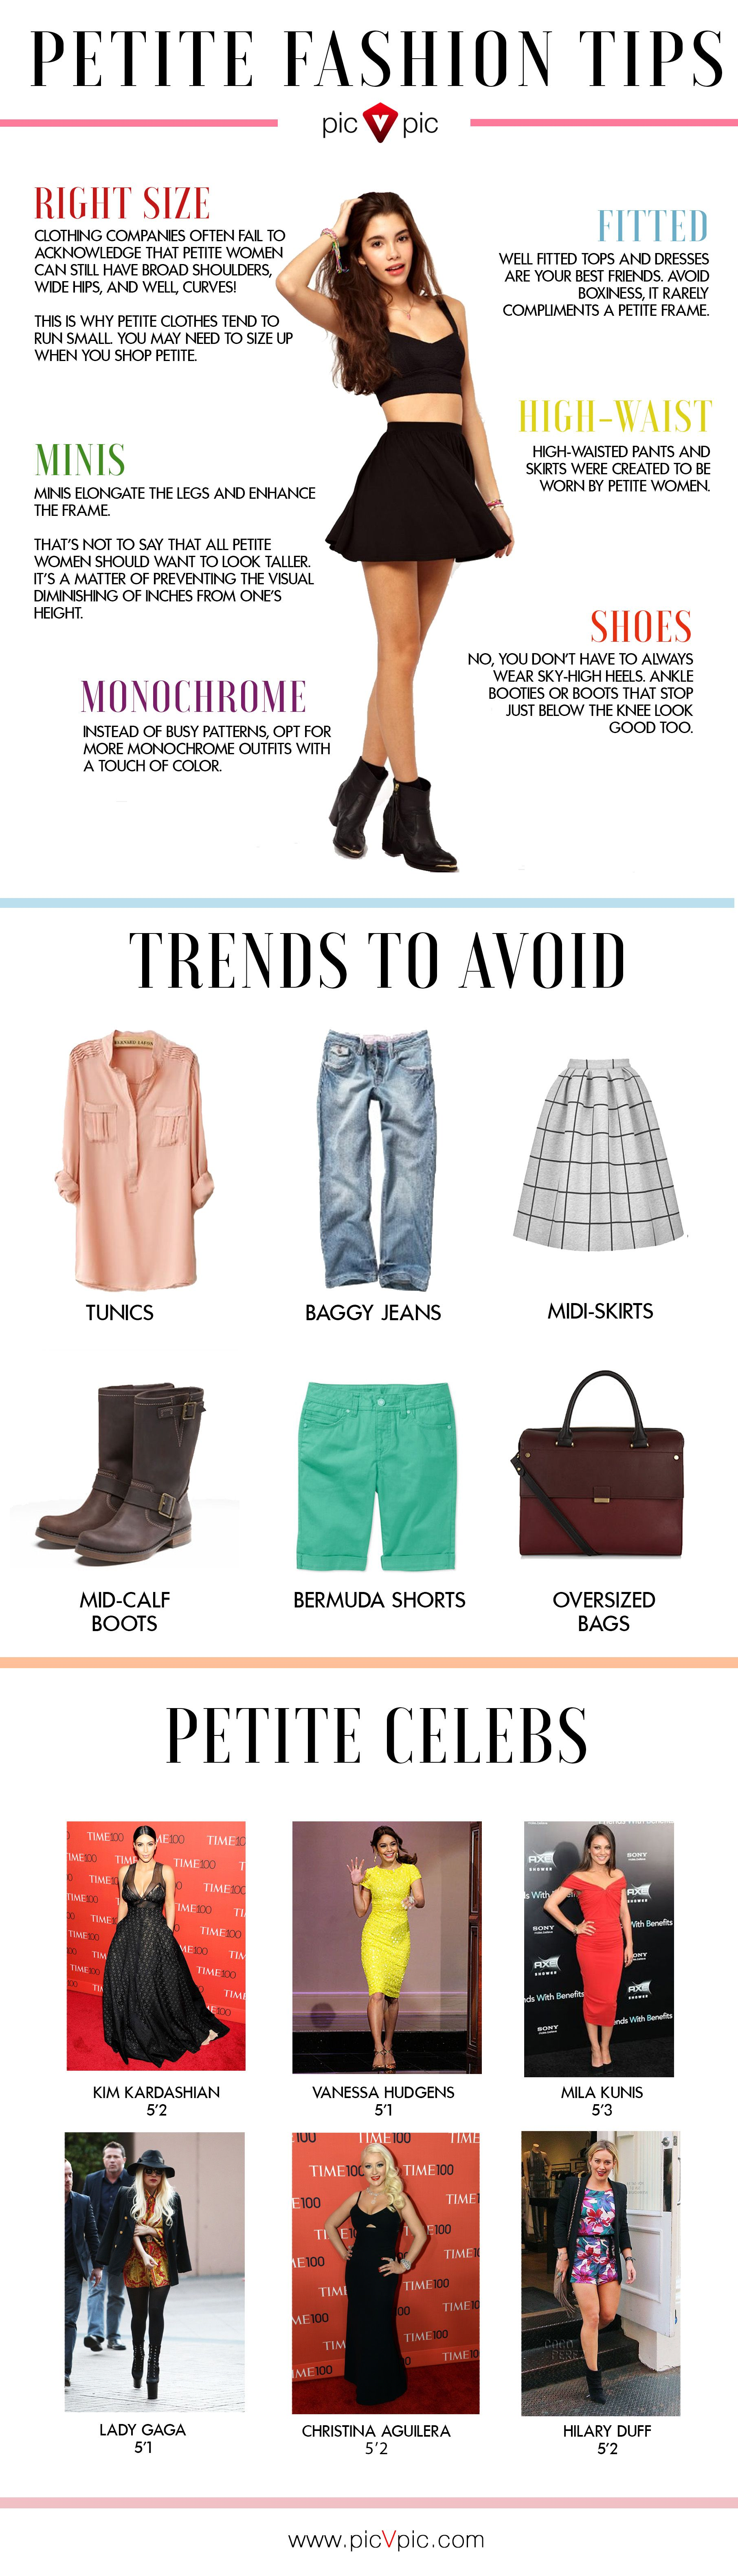 Fashion Shortcuts That Get You Out the Door Faster